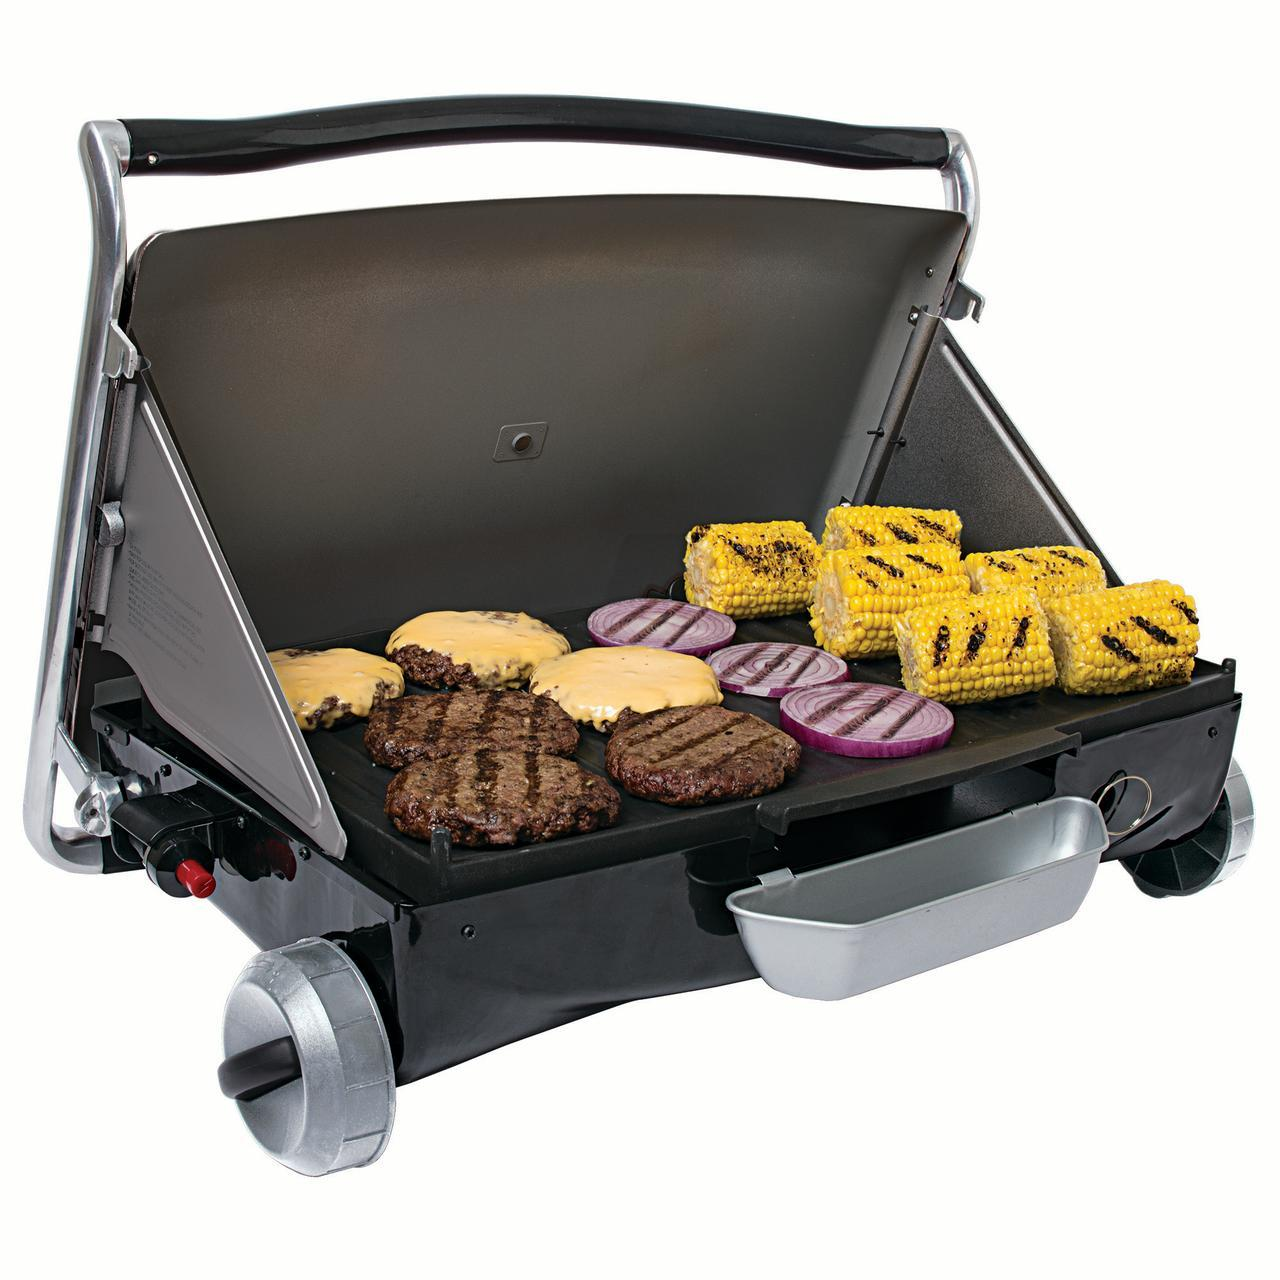 George Foreman Portable Gas Camp and Tailgate Grill for $41.07 Shipped